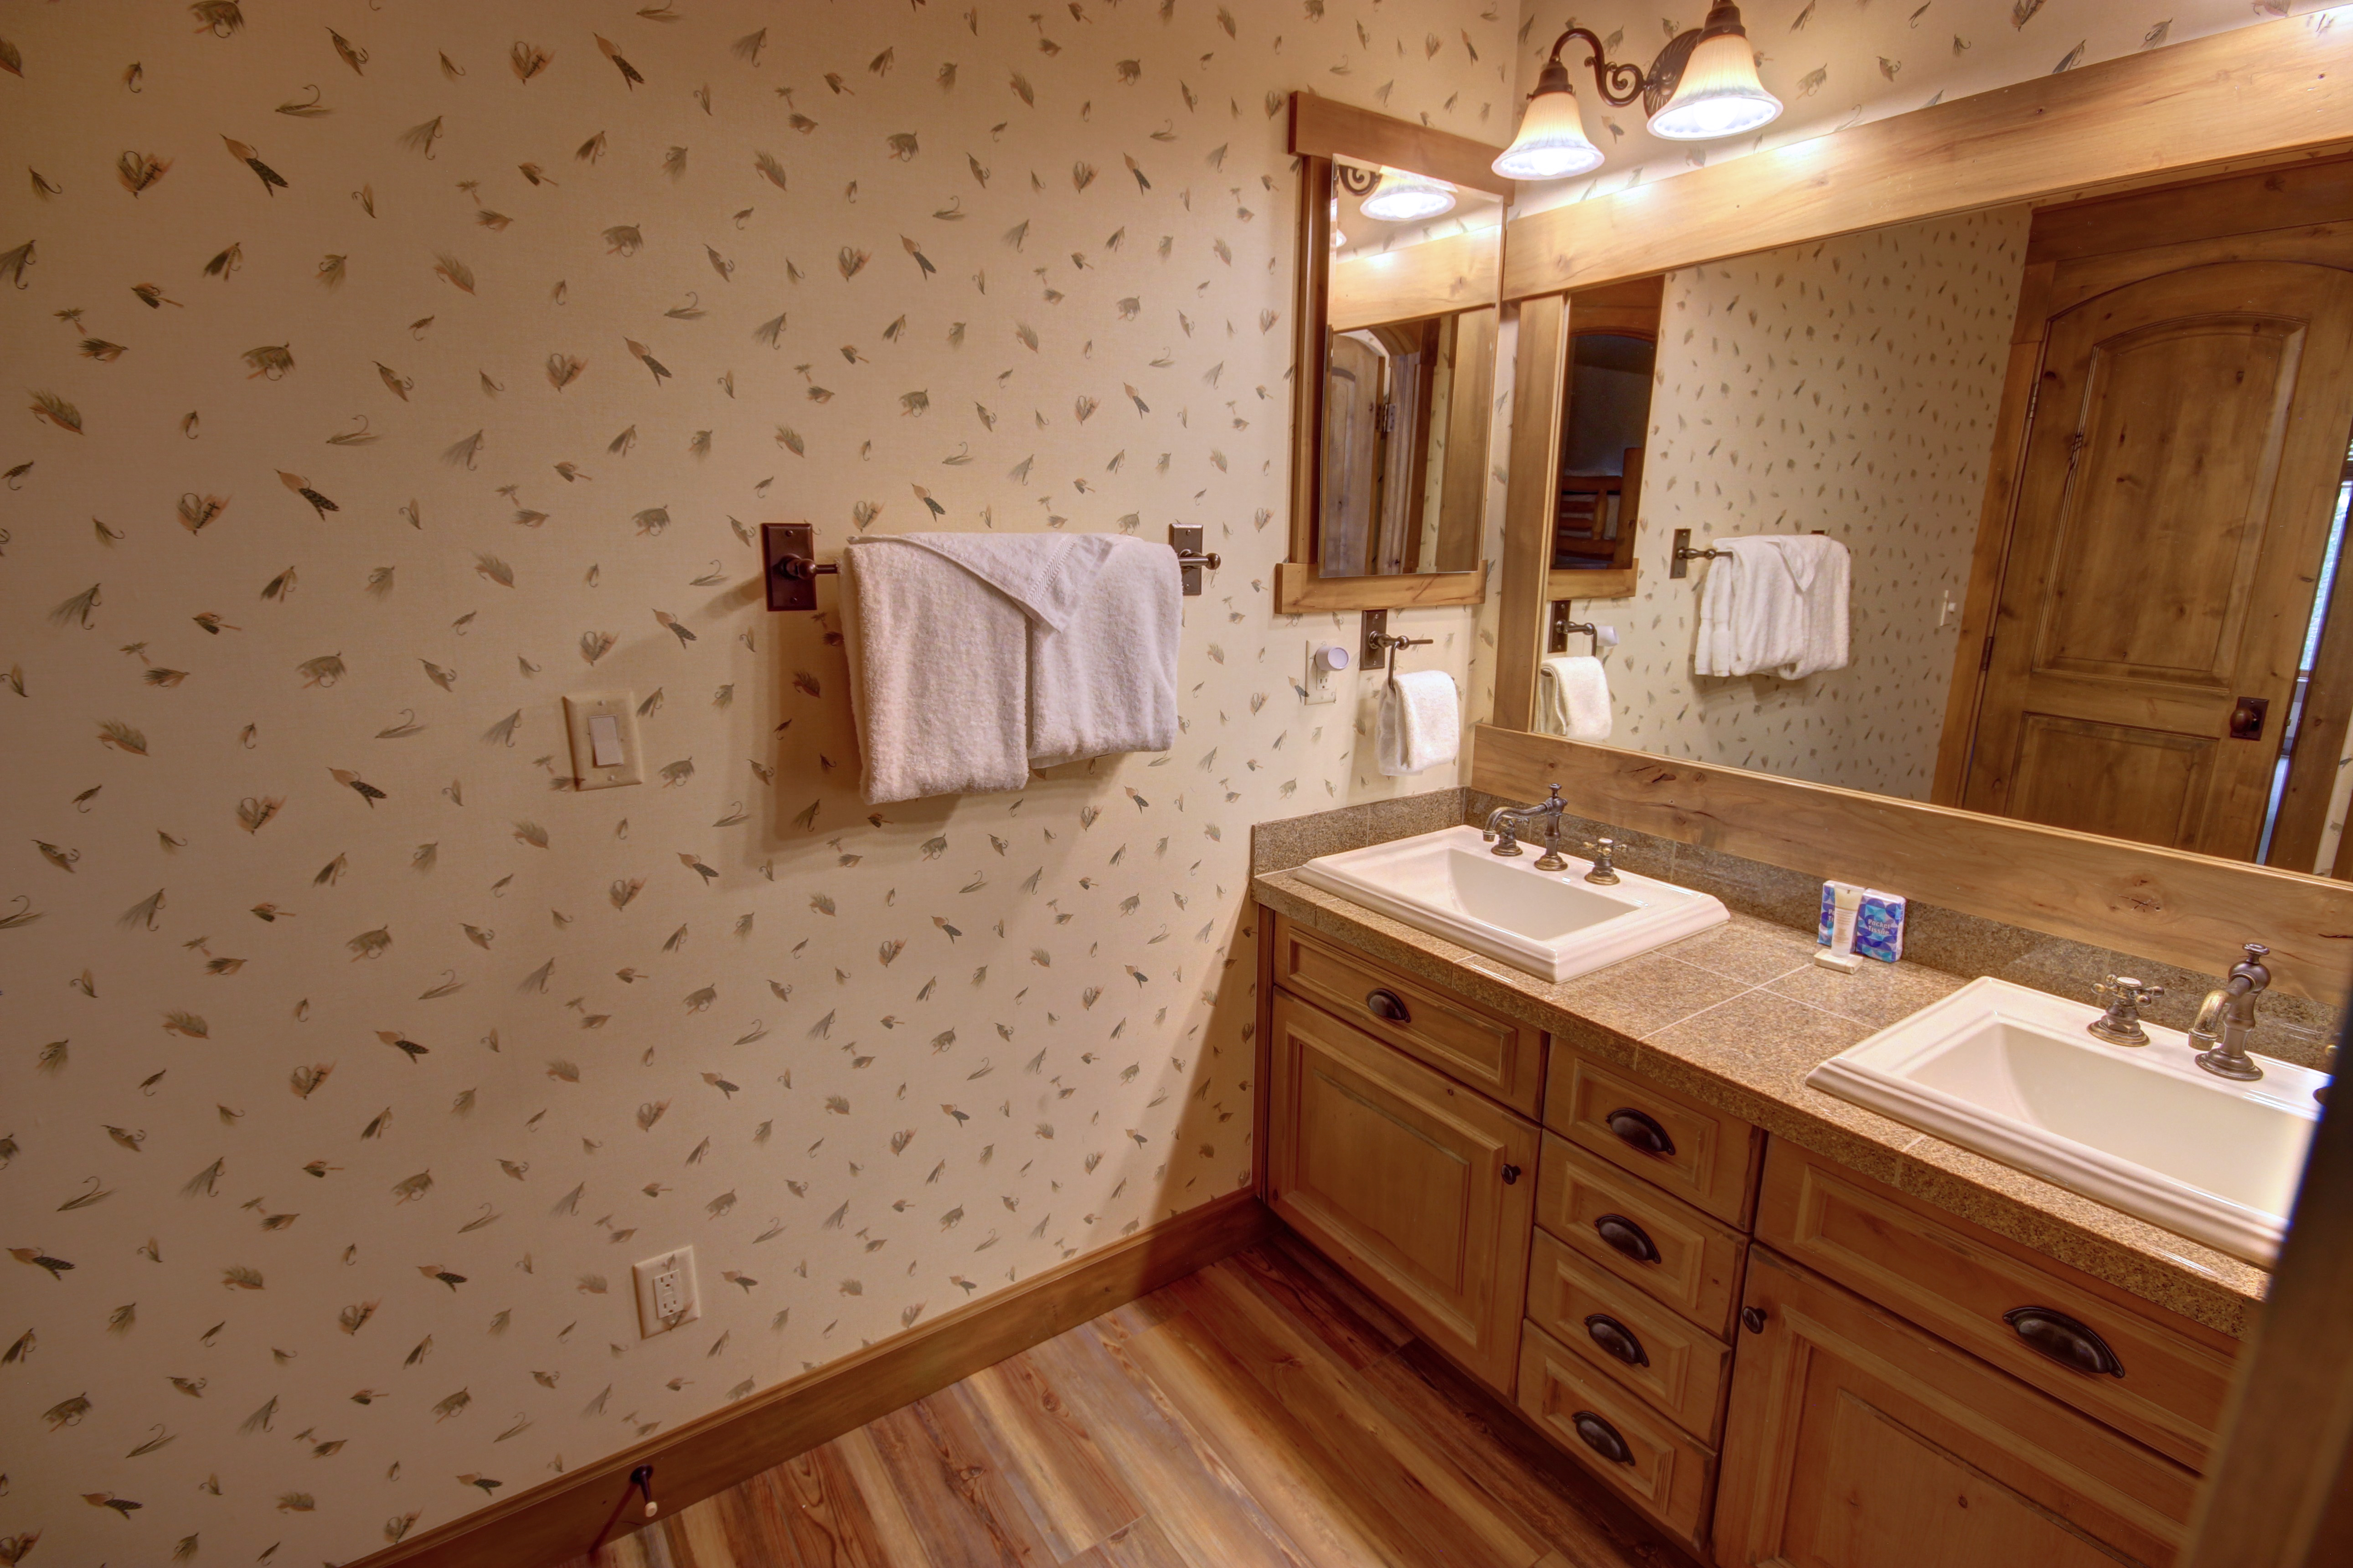 Bathroom with gorgeous wooden tiles